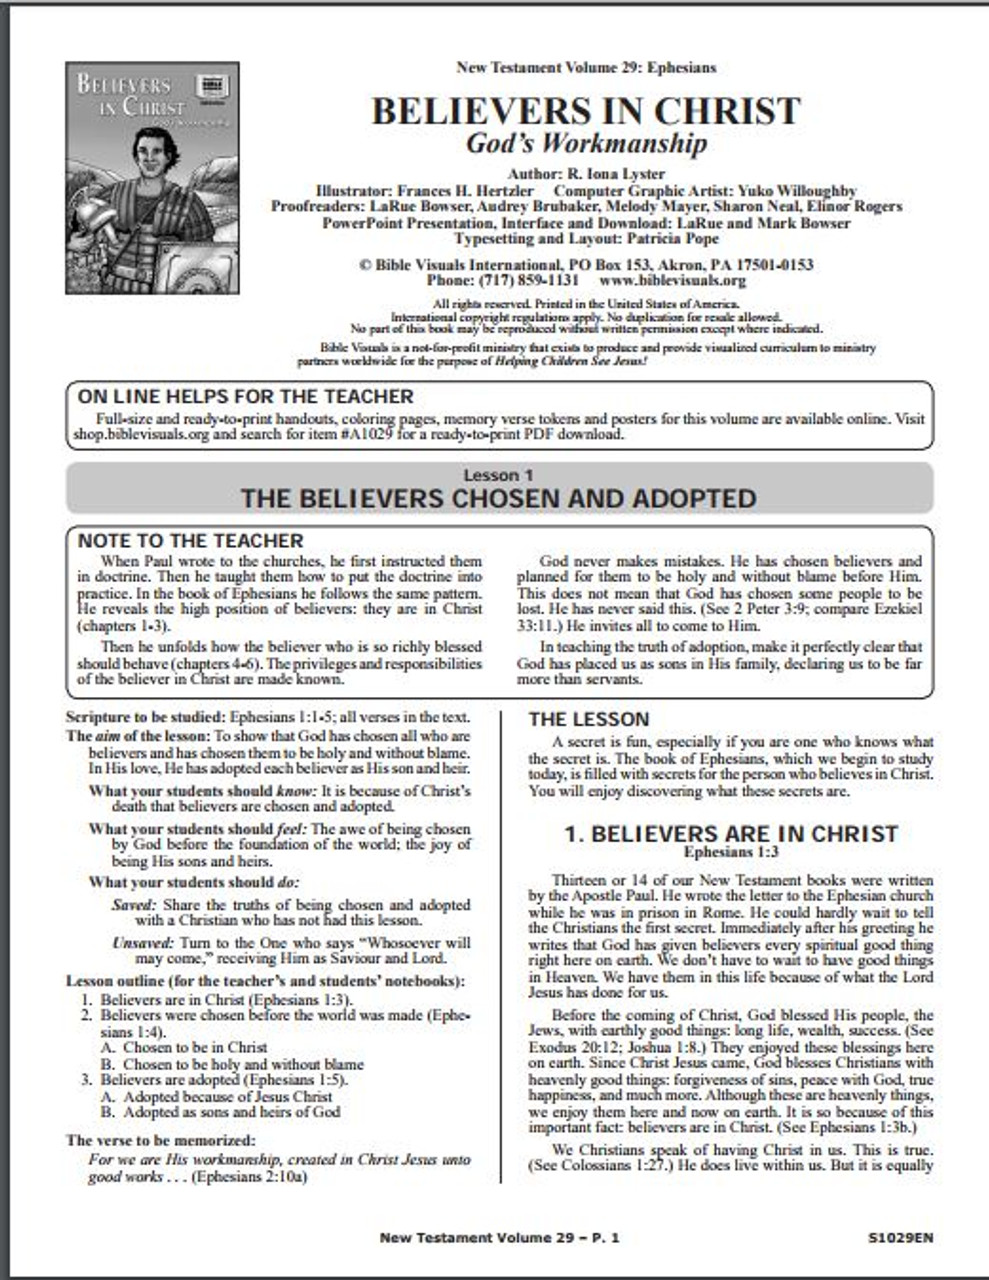 Believers in Christ (visuals only)